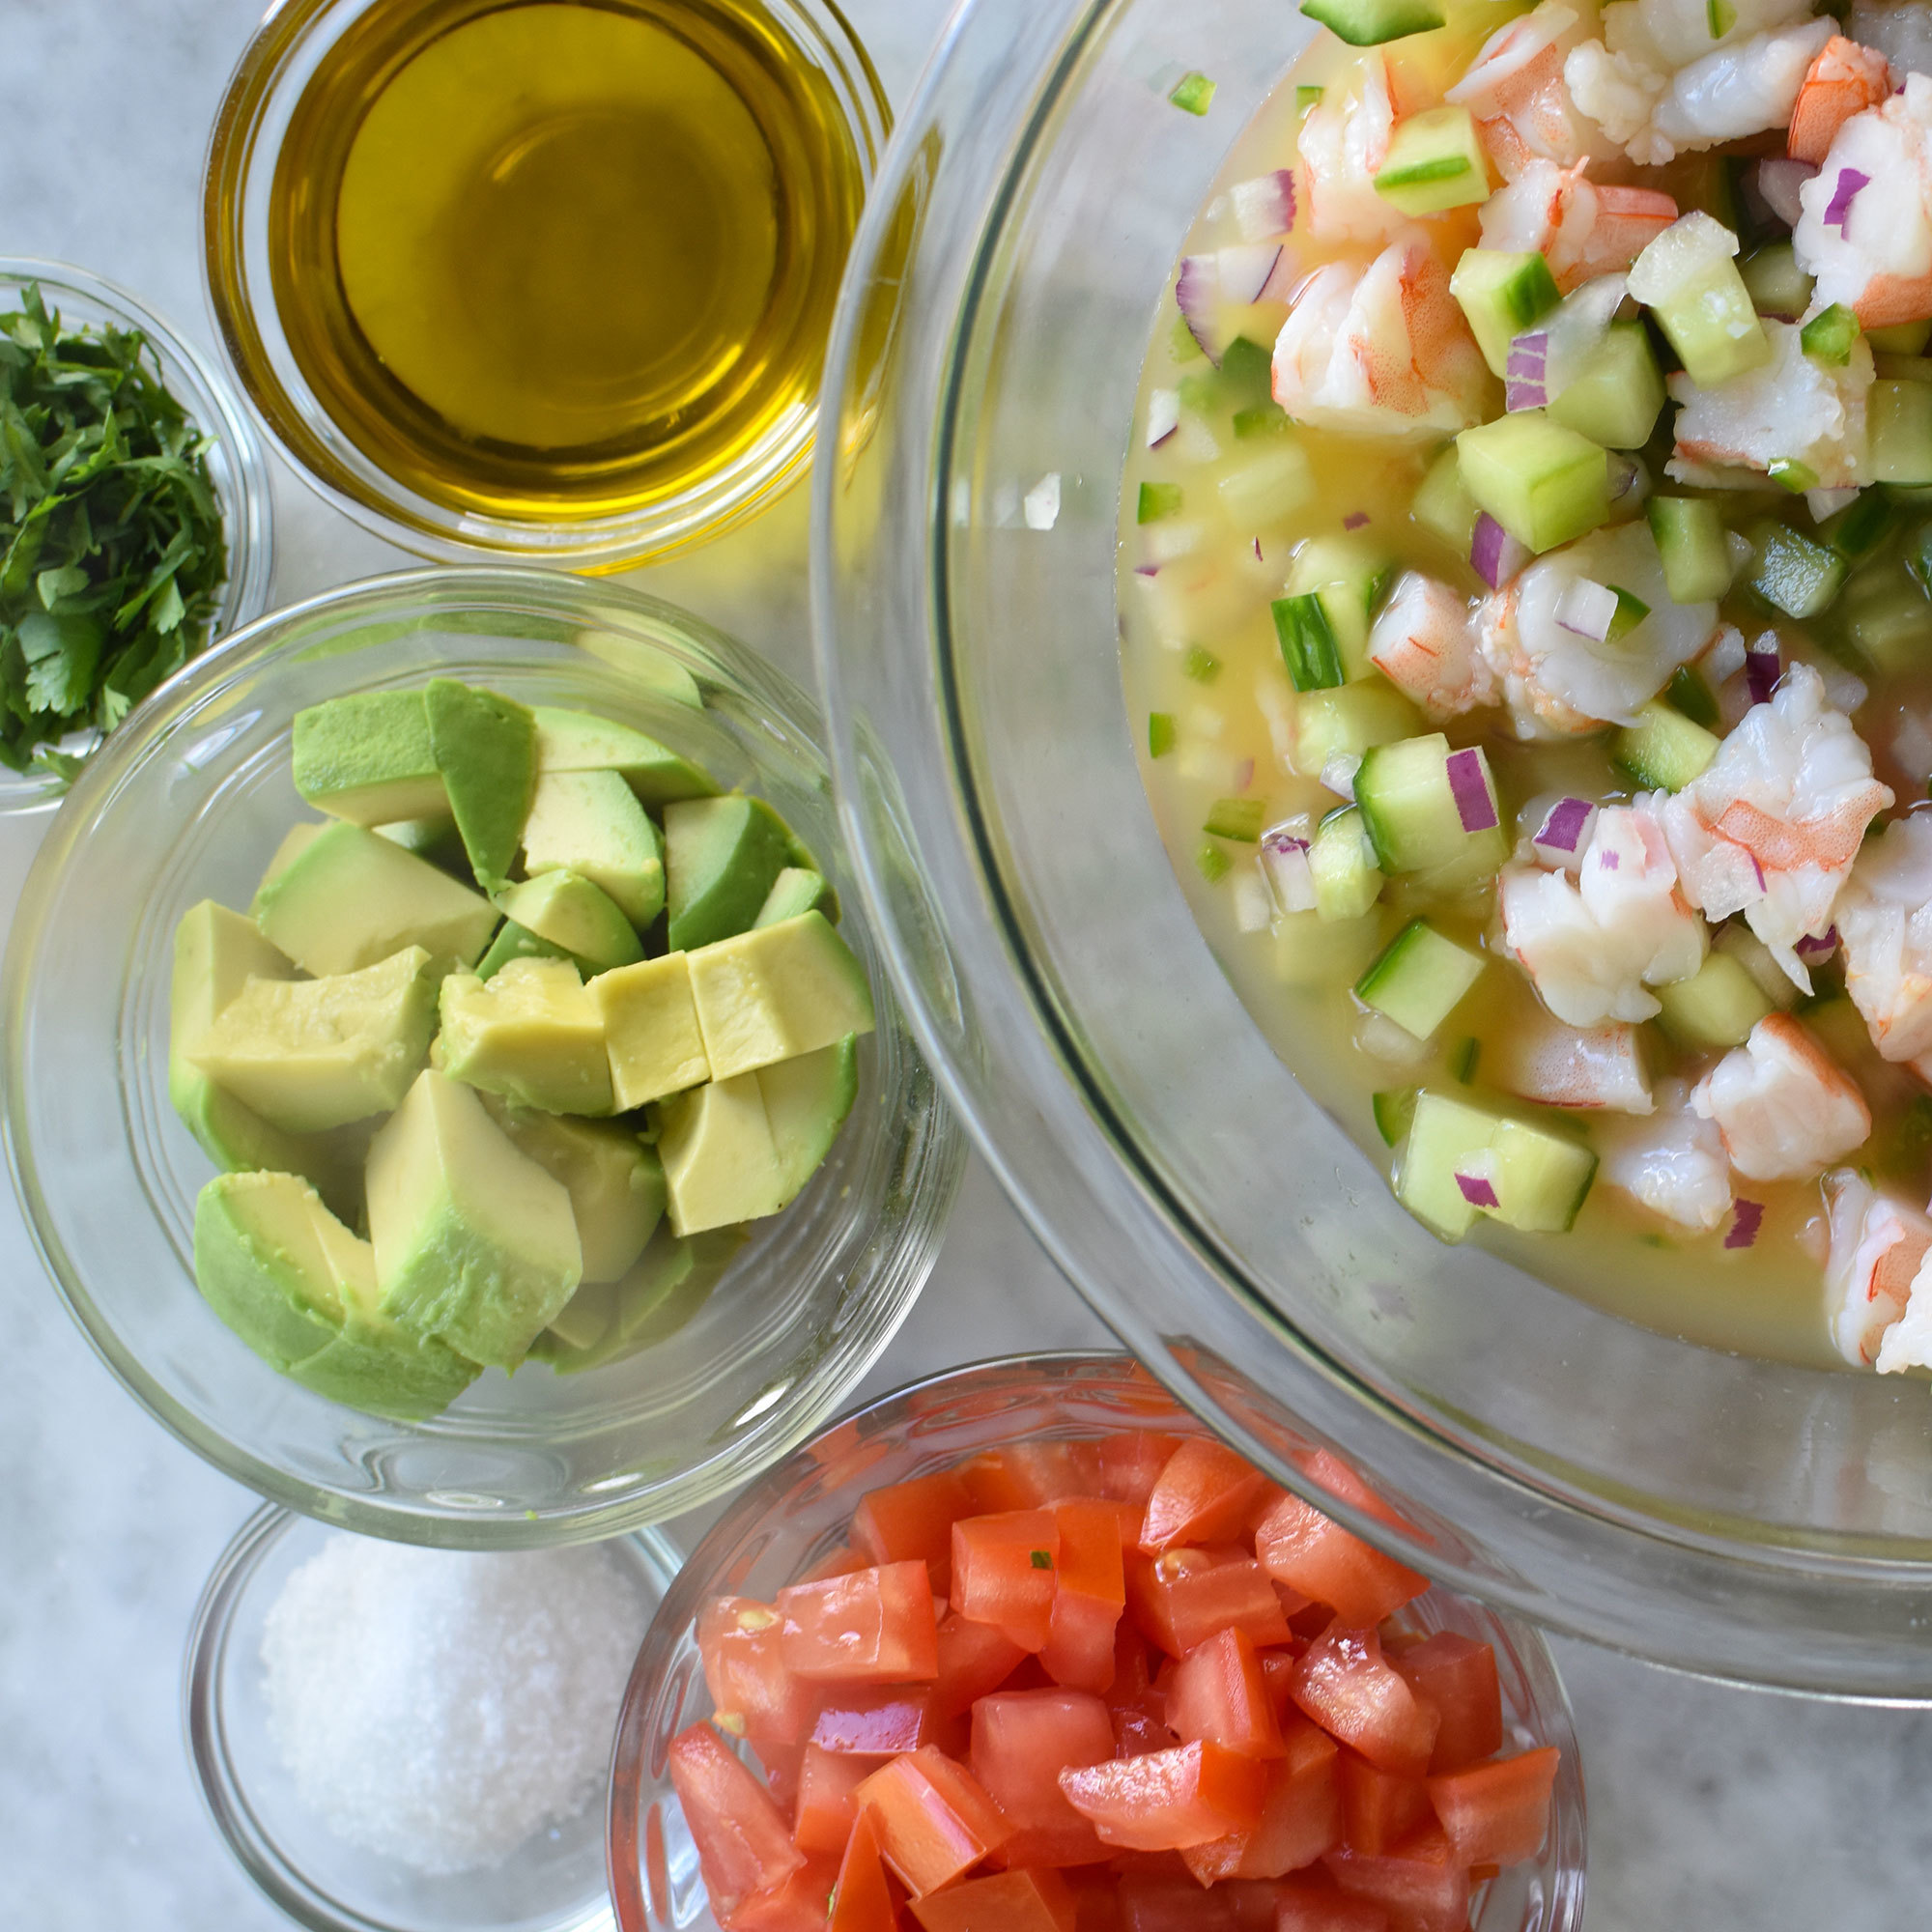 Tomatoes and Avocado for Ceviche